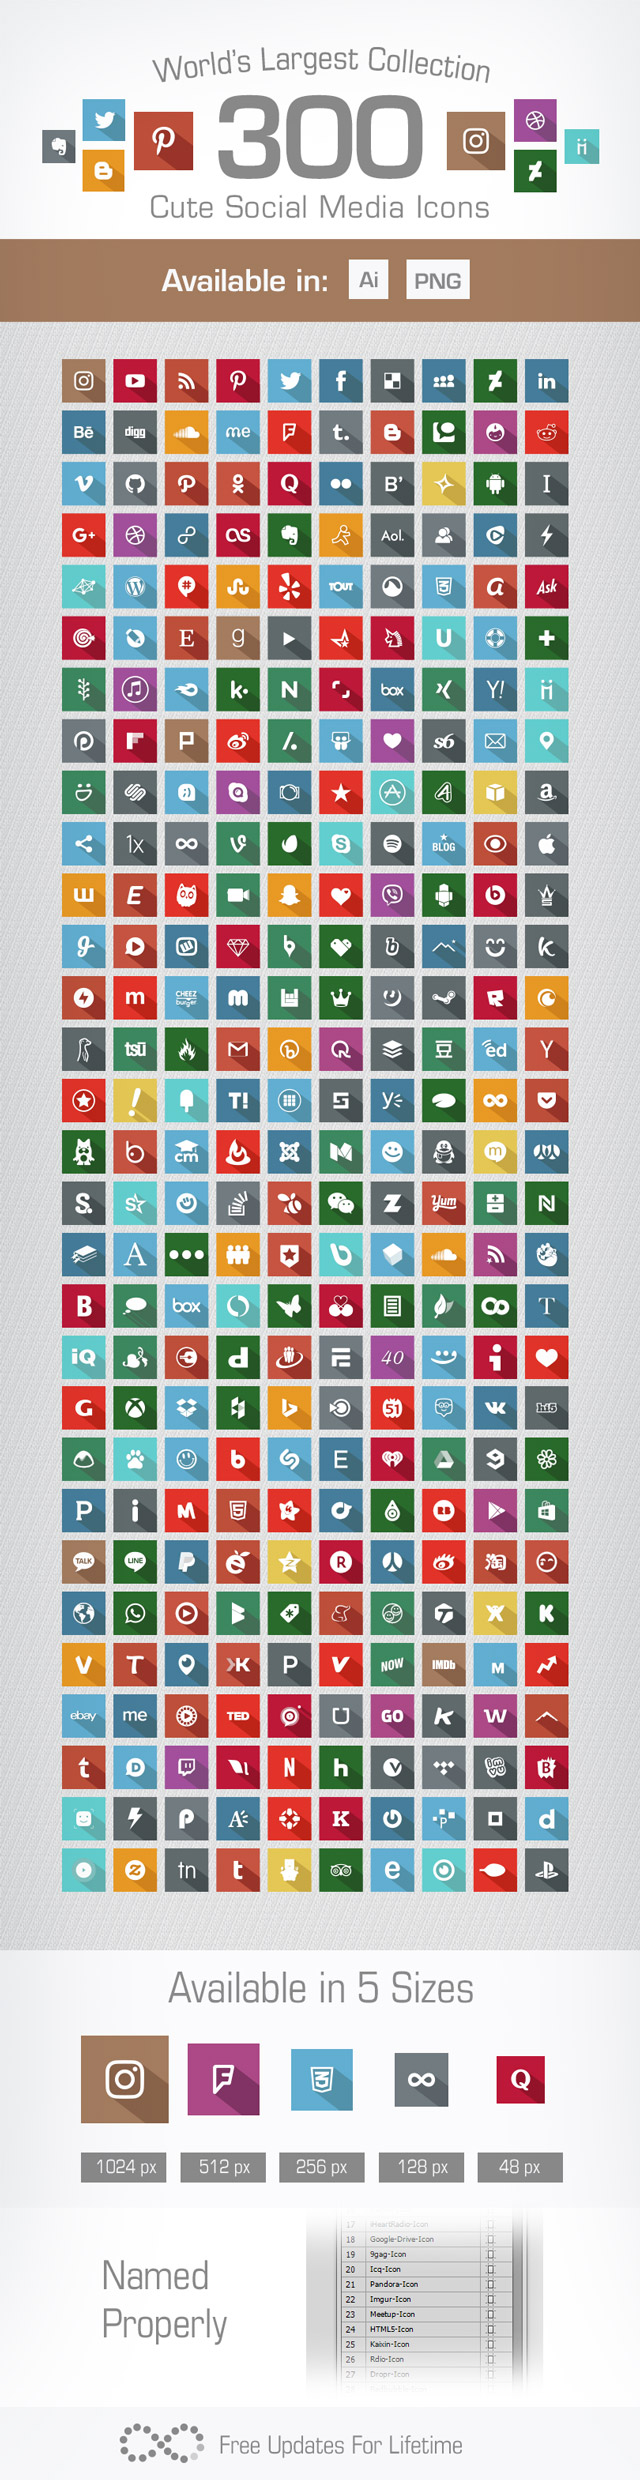 Free-Flat-Long-Shadow-Social-Media-Icons-Set--2017